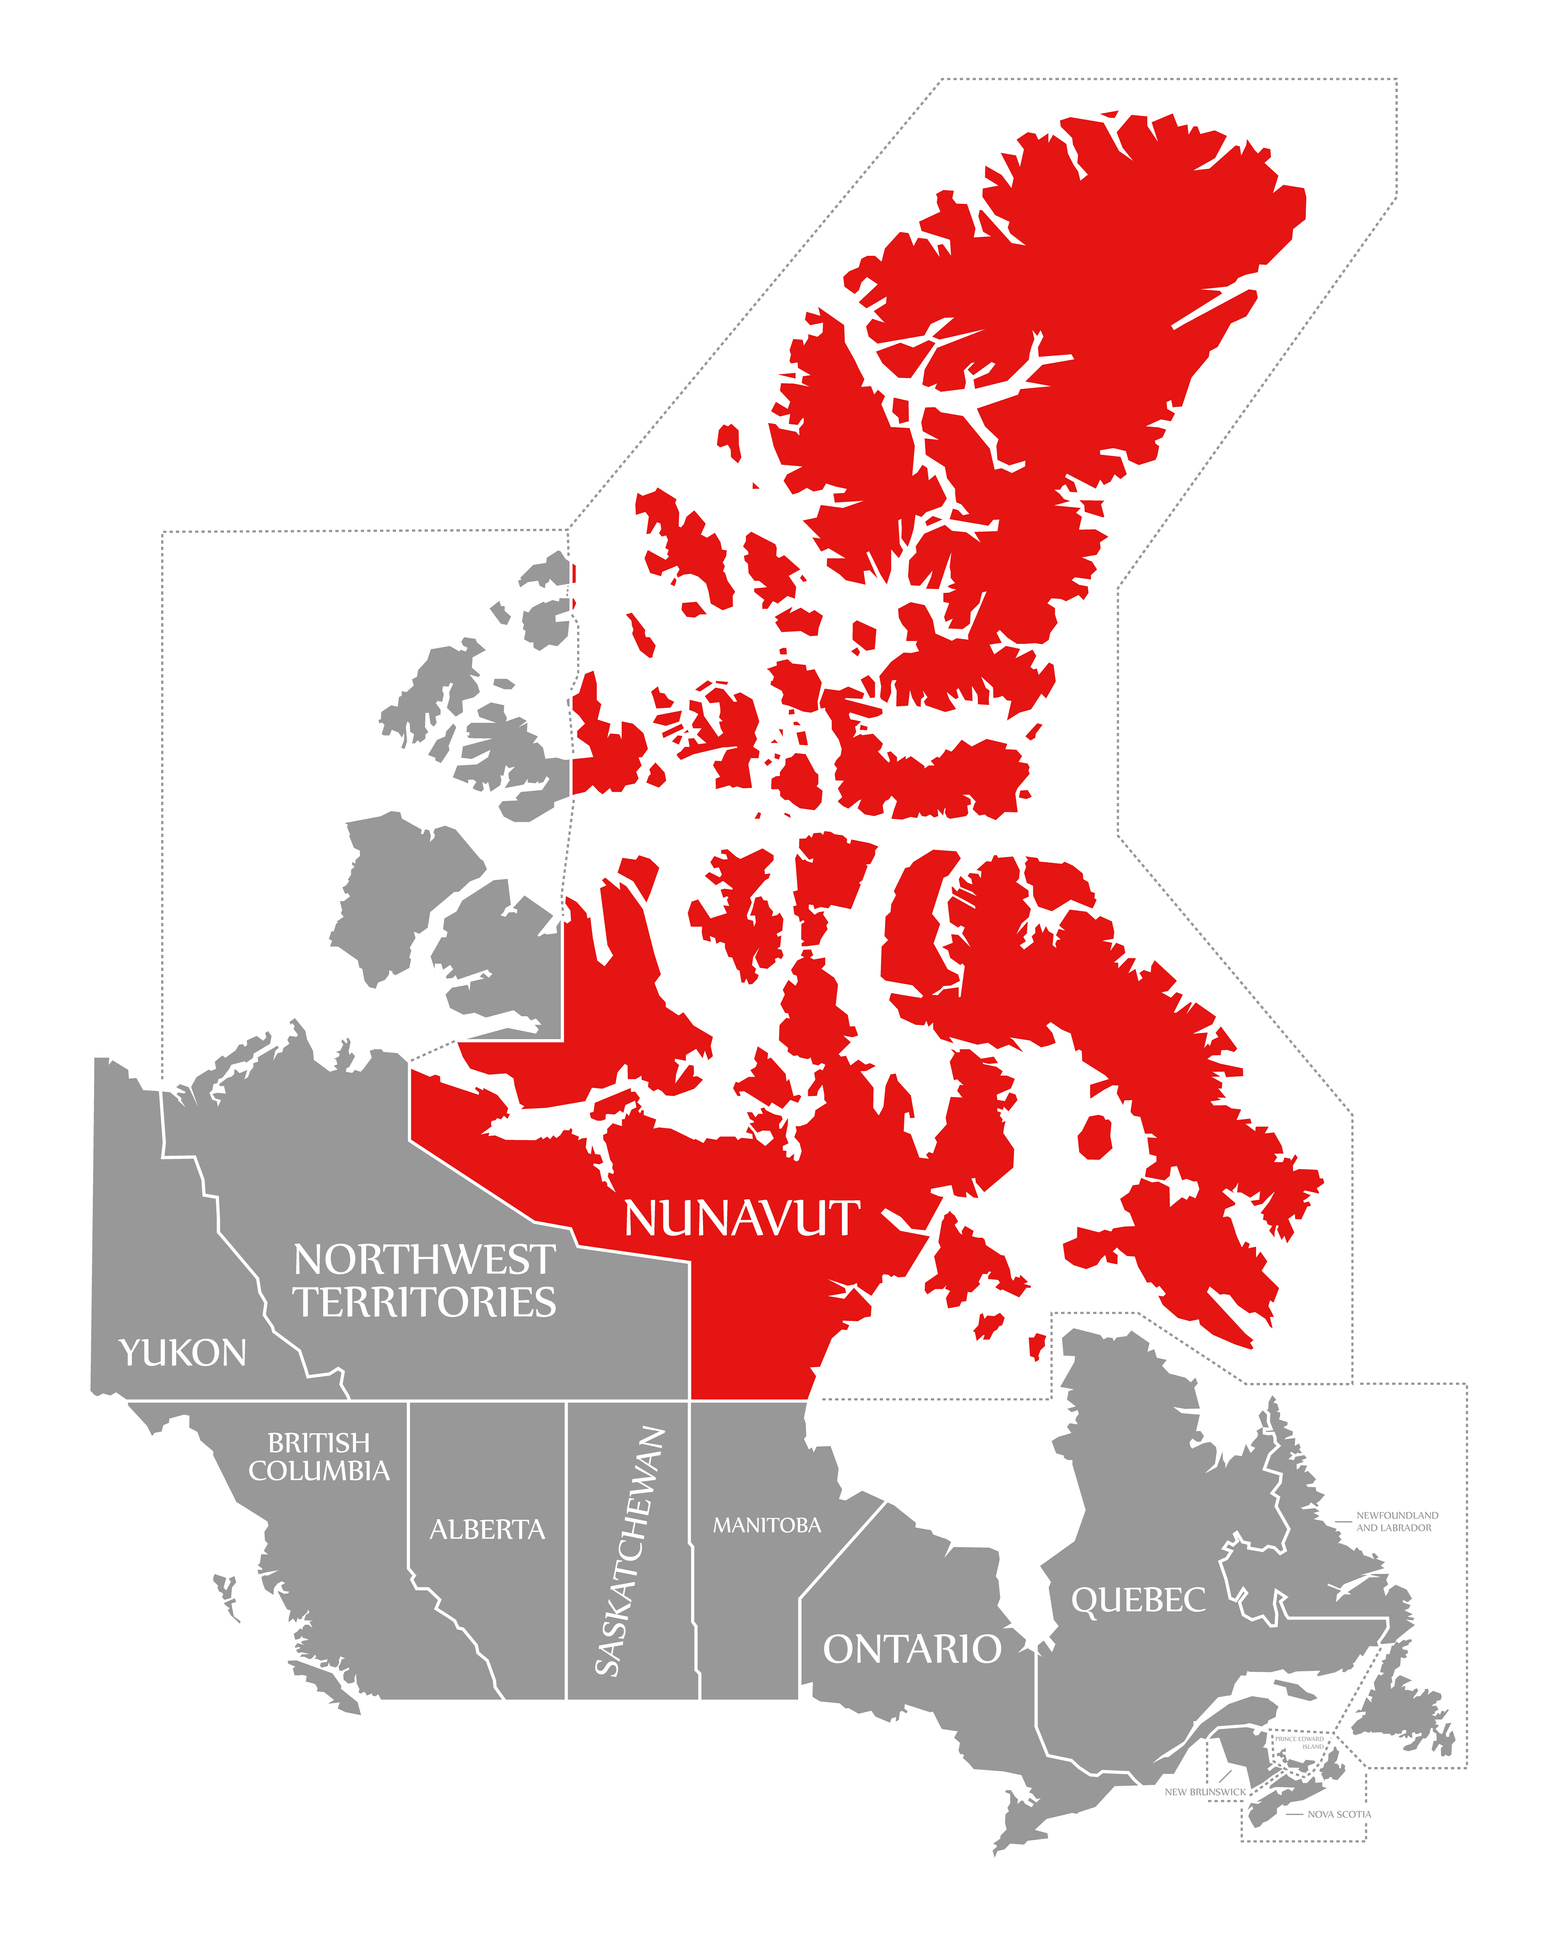 Map of the Canadian territory of Nunavut